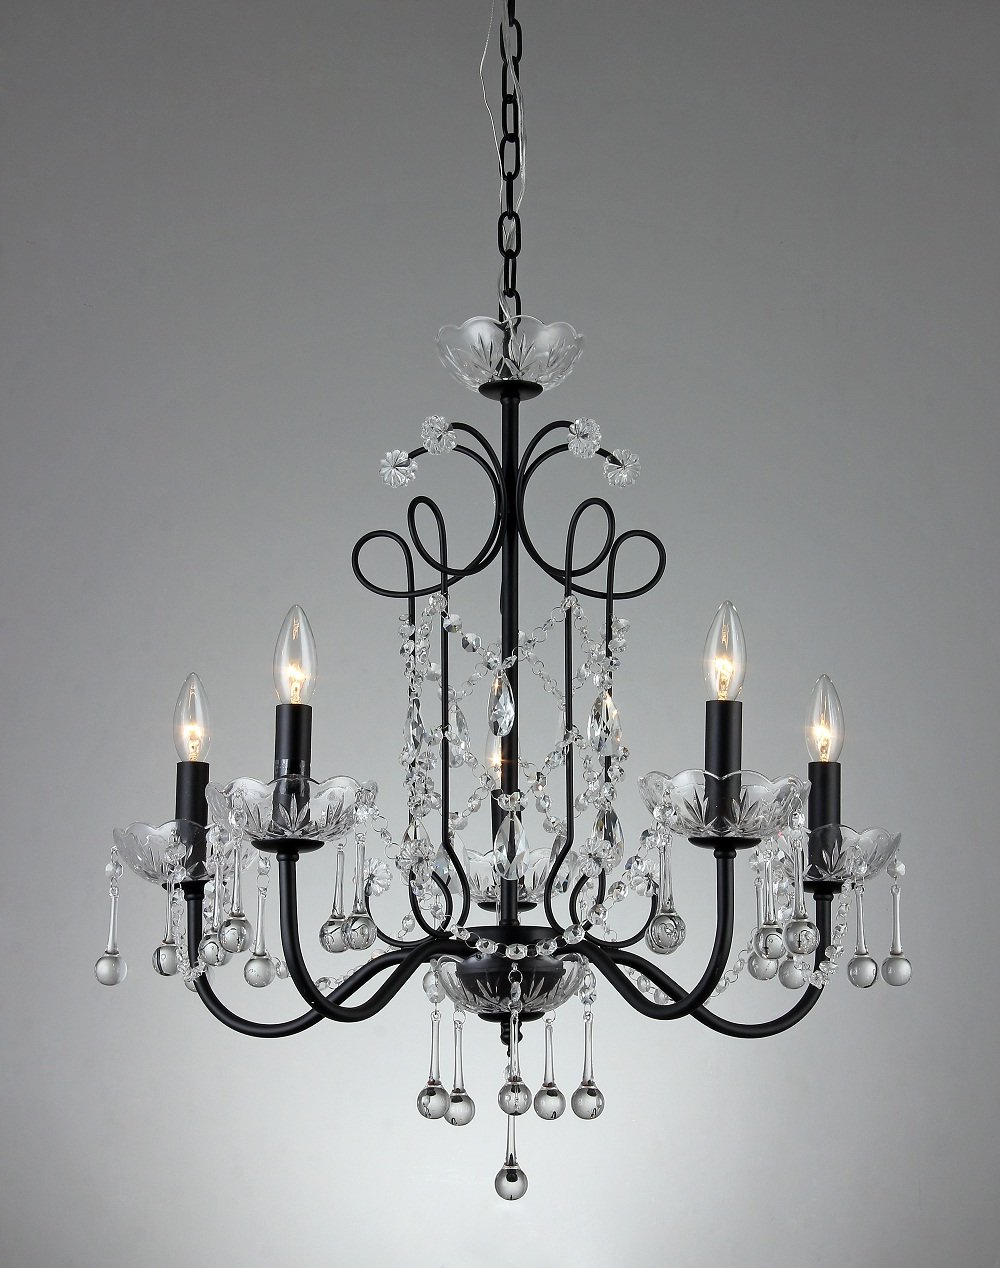 Newest Bunceton 5 Light Candle Style Chandelier Regarding Shaylee 5 Light Candle Style Chandeliers (View 10 of 20)